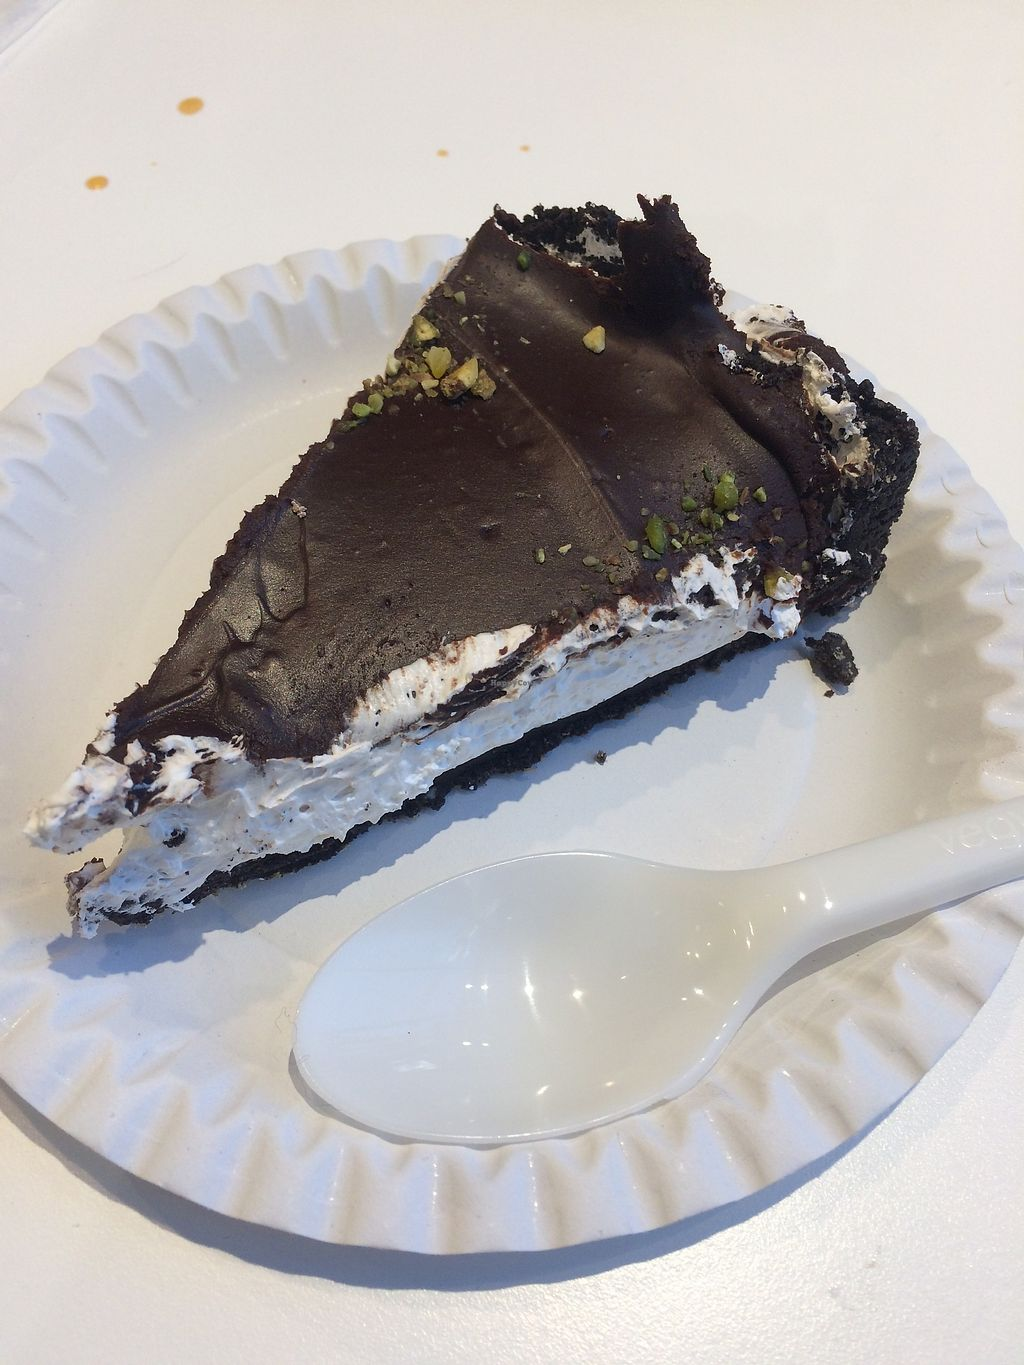 """Photo of Loving Hut - Spalena  by <a href=""""/members/profile/AnetaB%C3%A1rtov%C3%A1"""">AnetaBártová</a> <br/>Delicious oreo cheesecake!  <br/> March 3, 2018  - <a href='/contact/abuse/image/106853/366155'>Report</a>"""